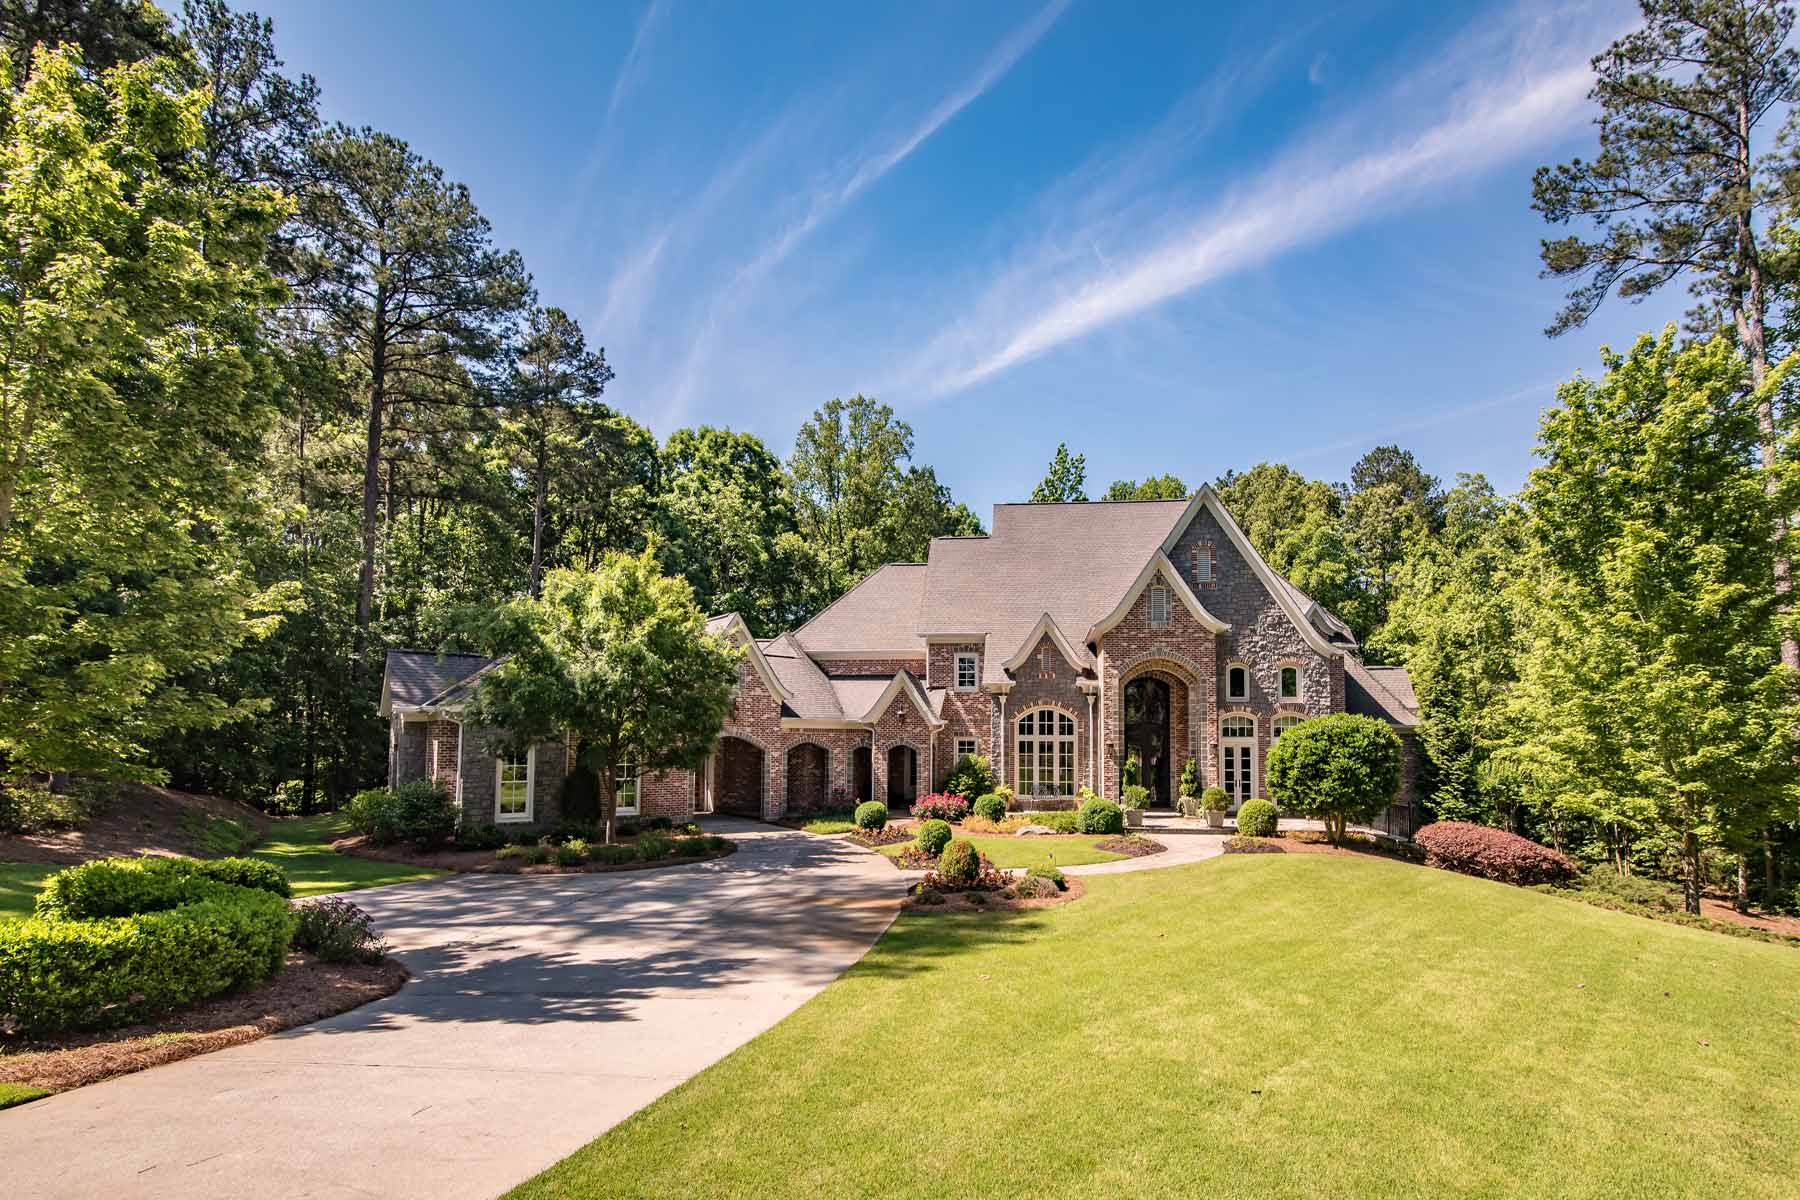 Single Family Home for Sale at Majestic Masterpiece In The Manor Golf And Country Club 3125 Manor Bridge Drive Milton, Georgia 30004 United States